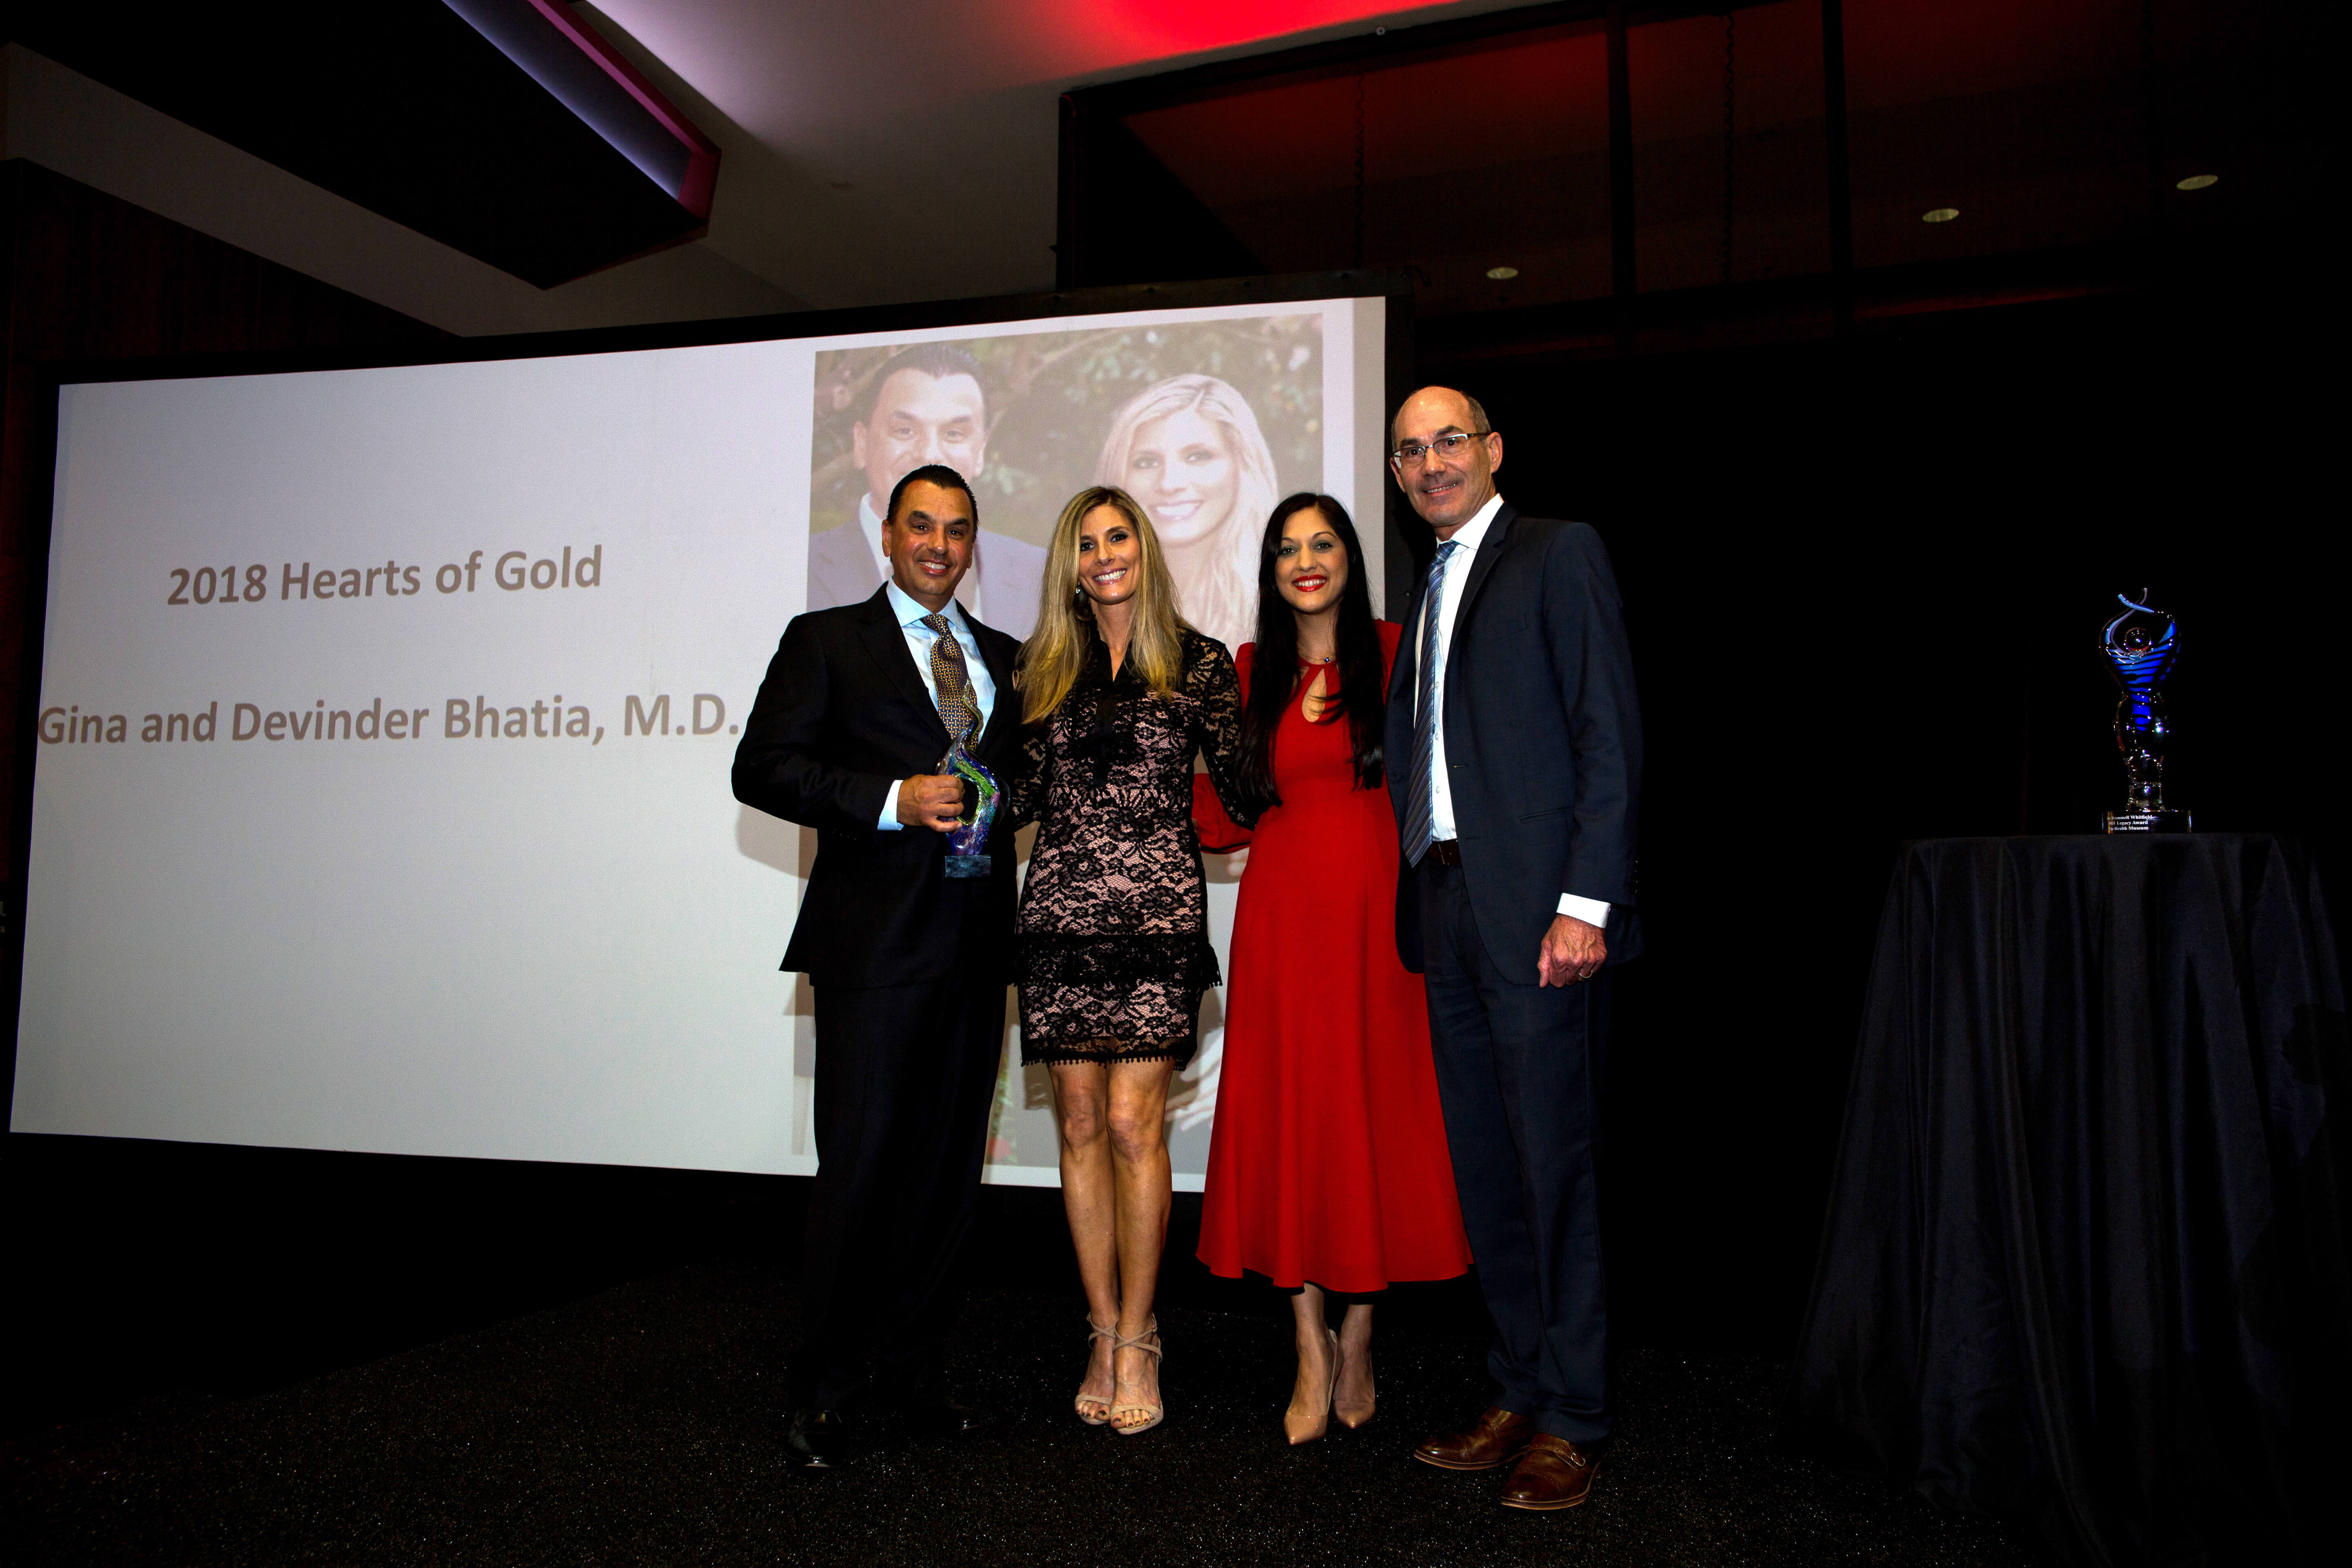 Philanthropists Gina Bhatia and Houston Methodist heart surgeon Devinder Bhatia, M.D., left, were presented with the 2018 Hearts of Gold Award.